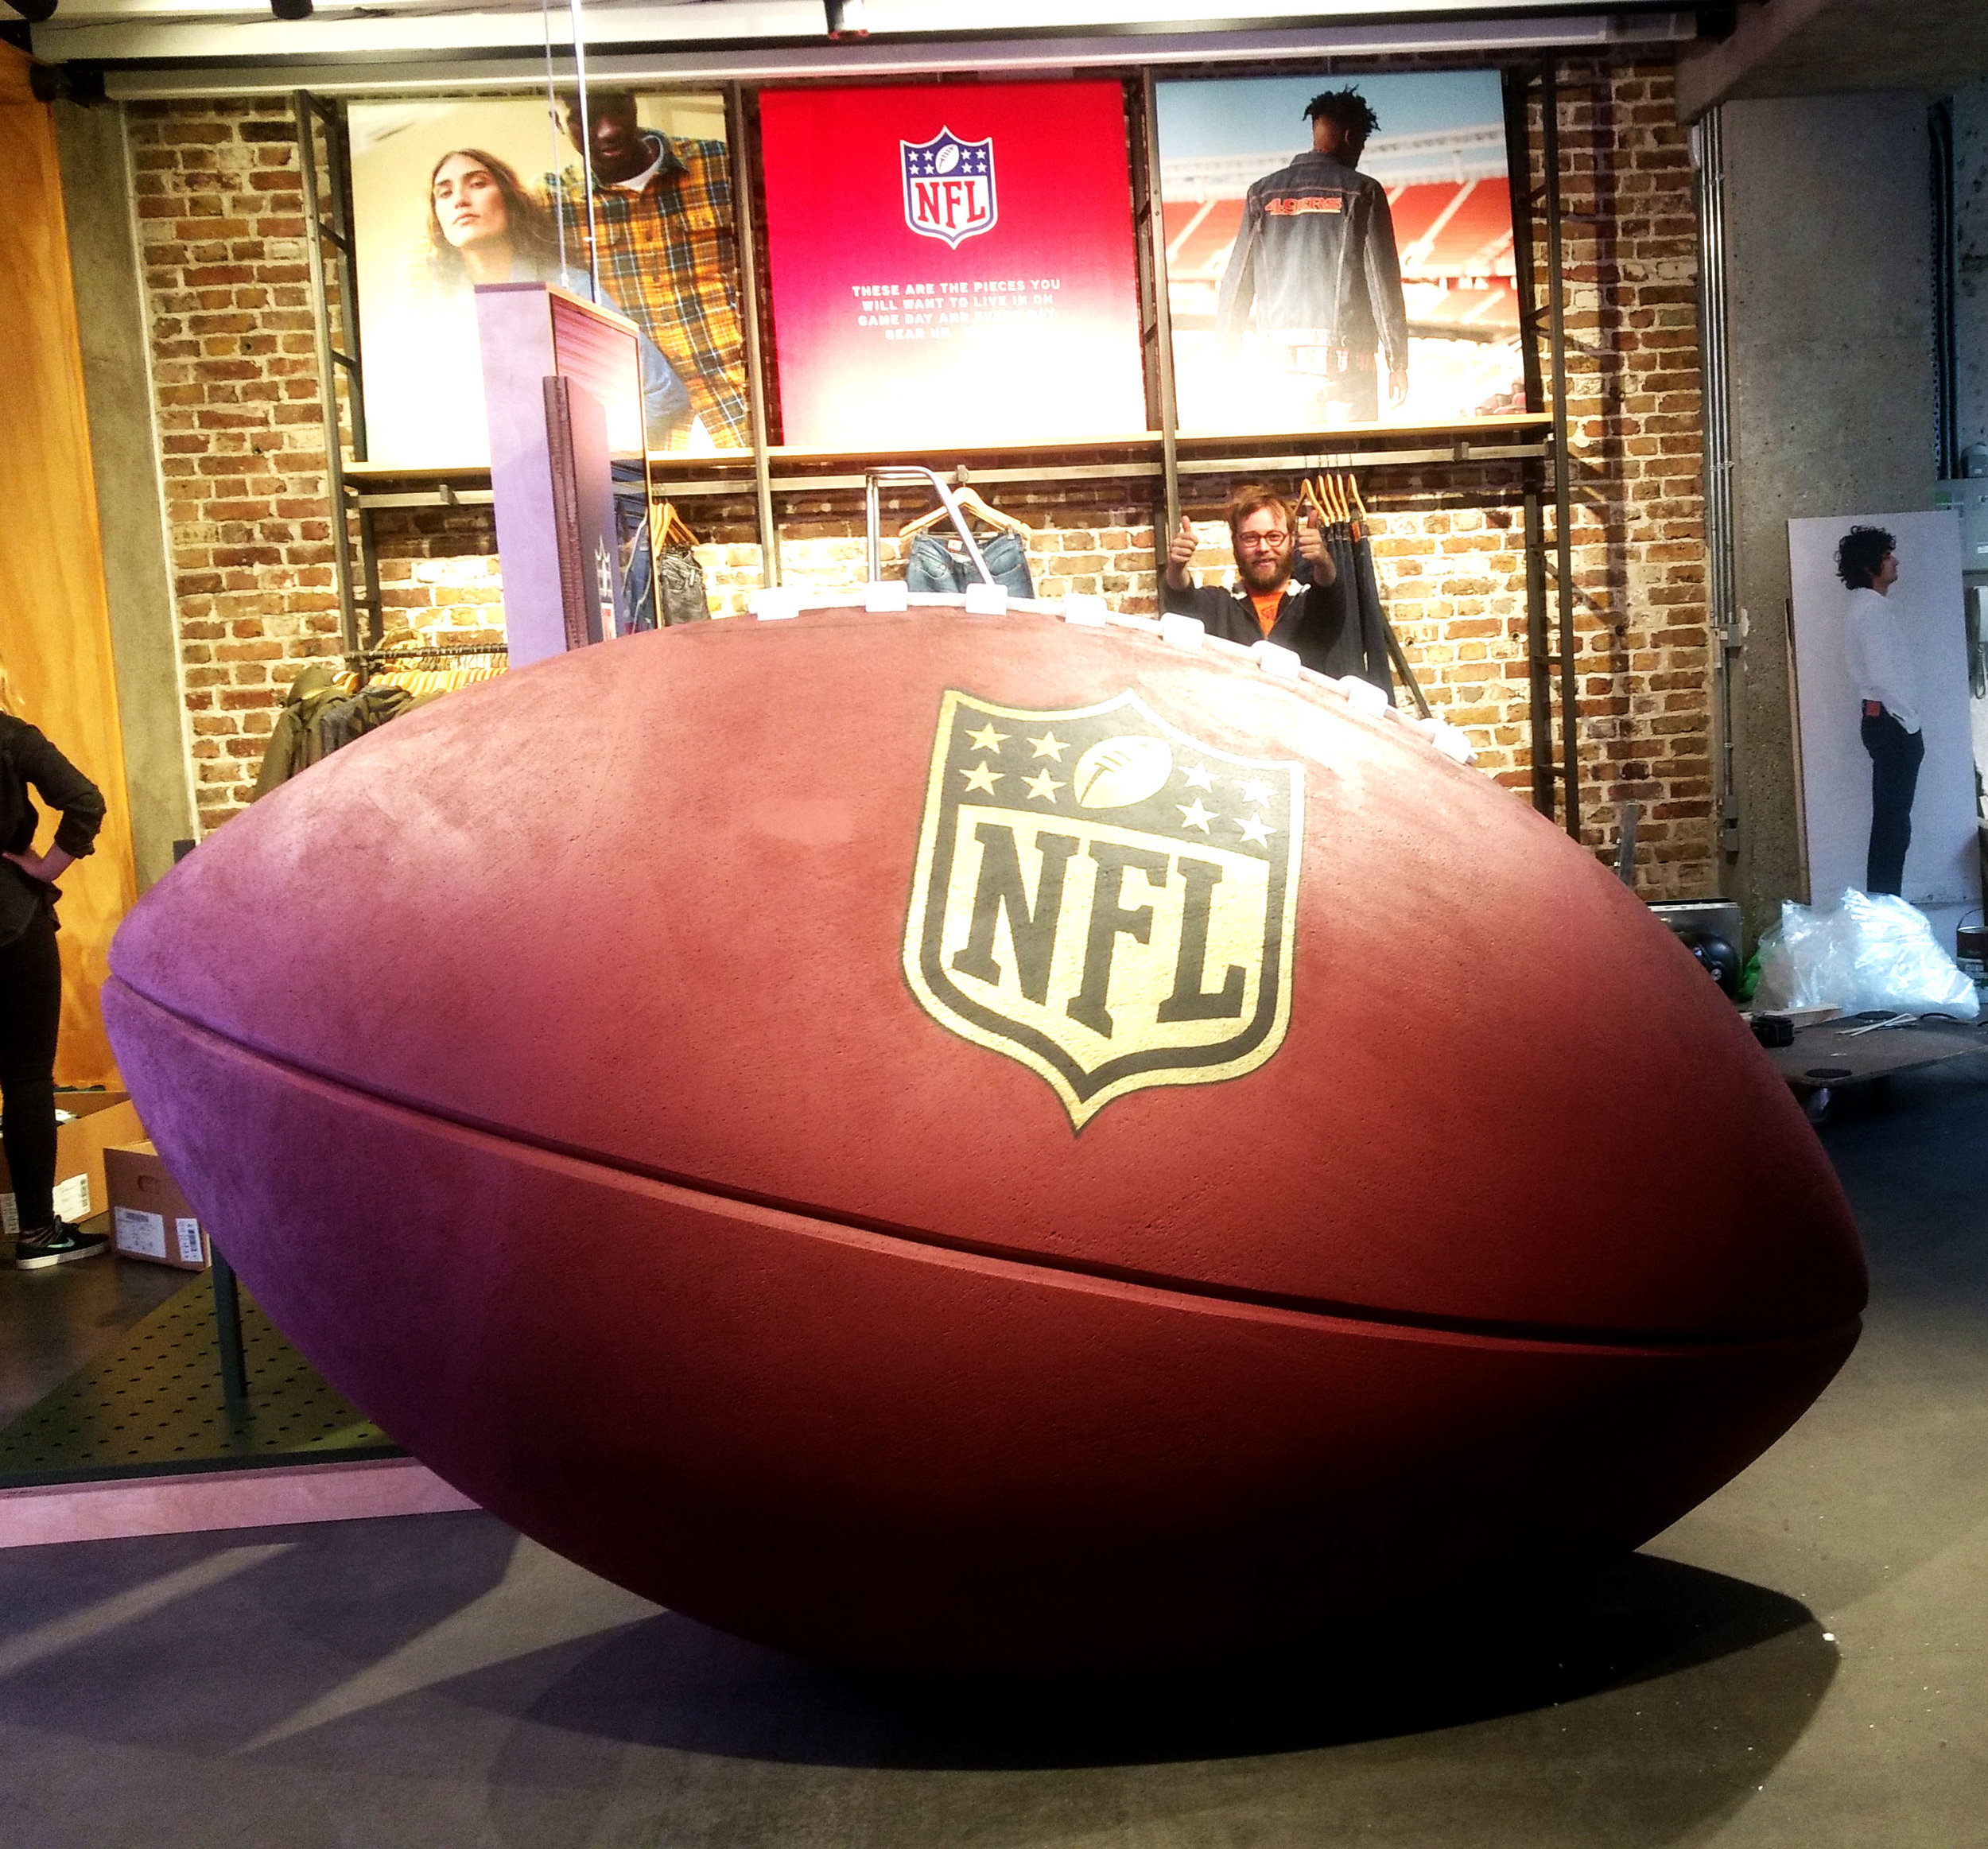 Levis giant NFL football